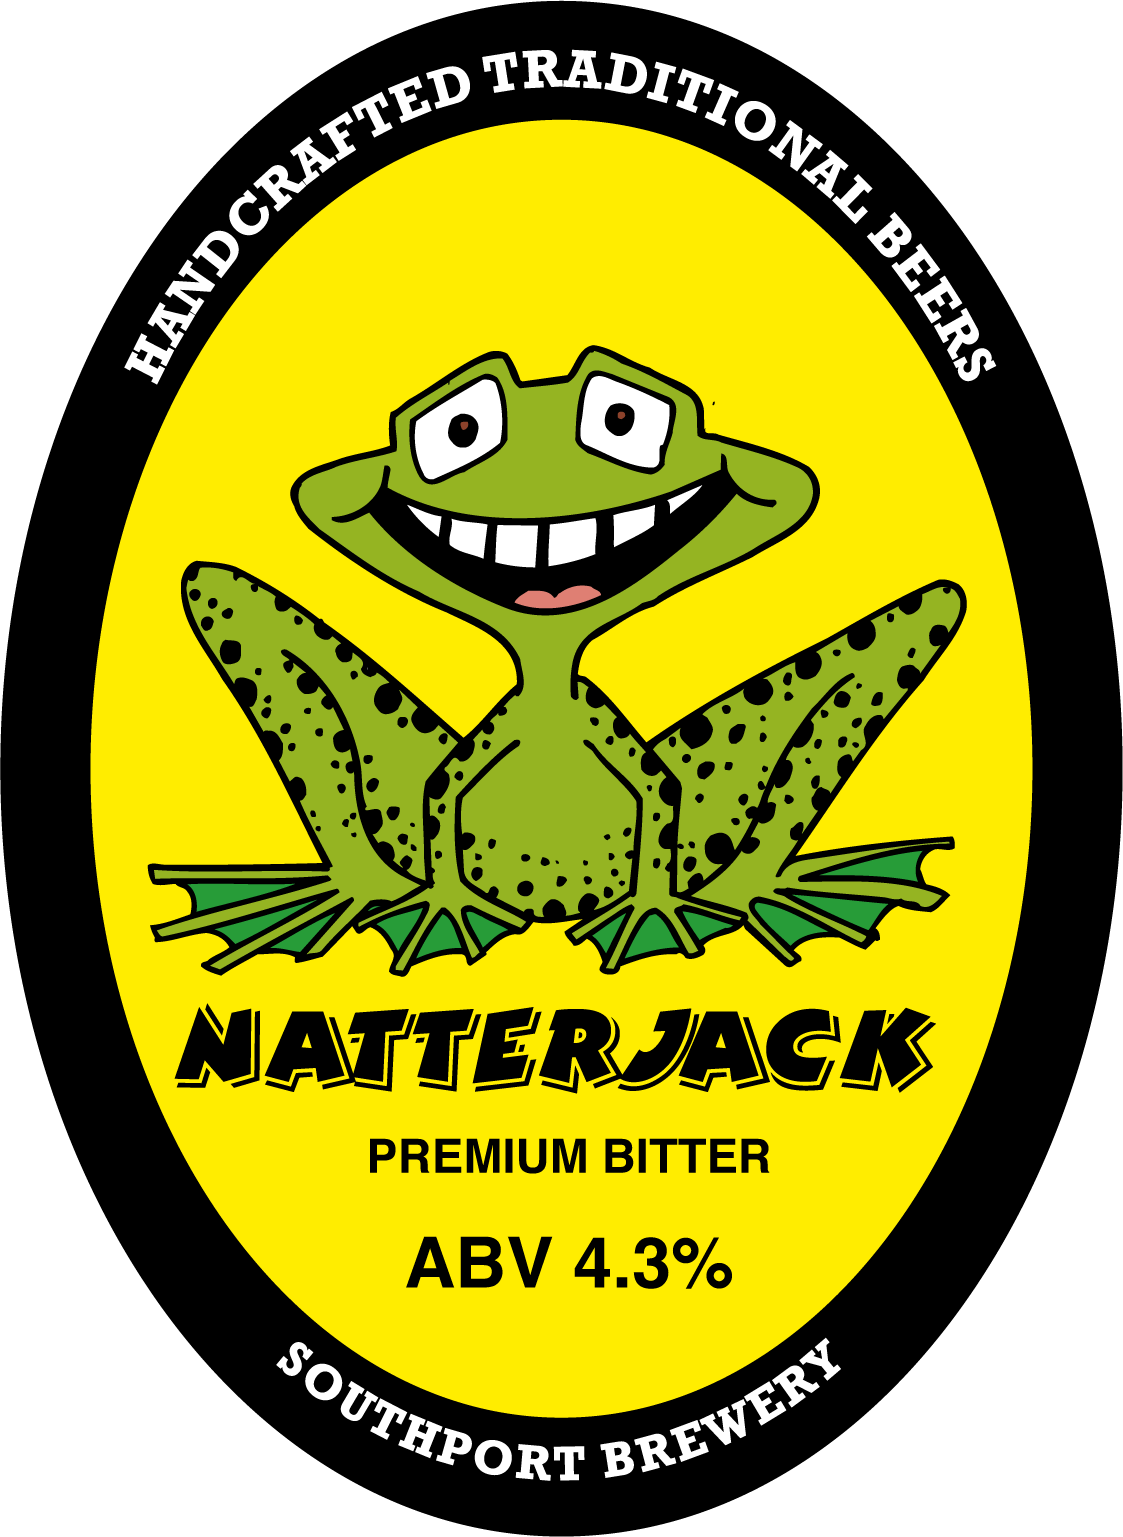 Natterjack. An oval badge with a yellow background, bordered in black with the brewery name shown in white within it. A cartoon toad sits smiling in the foreground and the beer name and ABV are shown below.